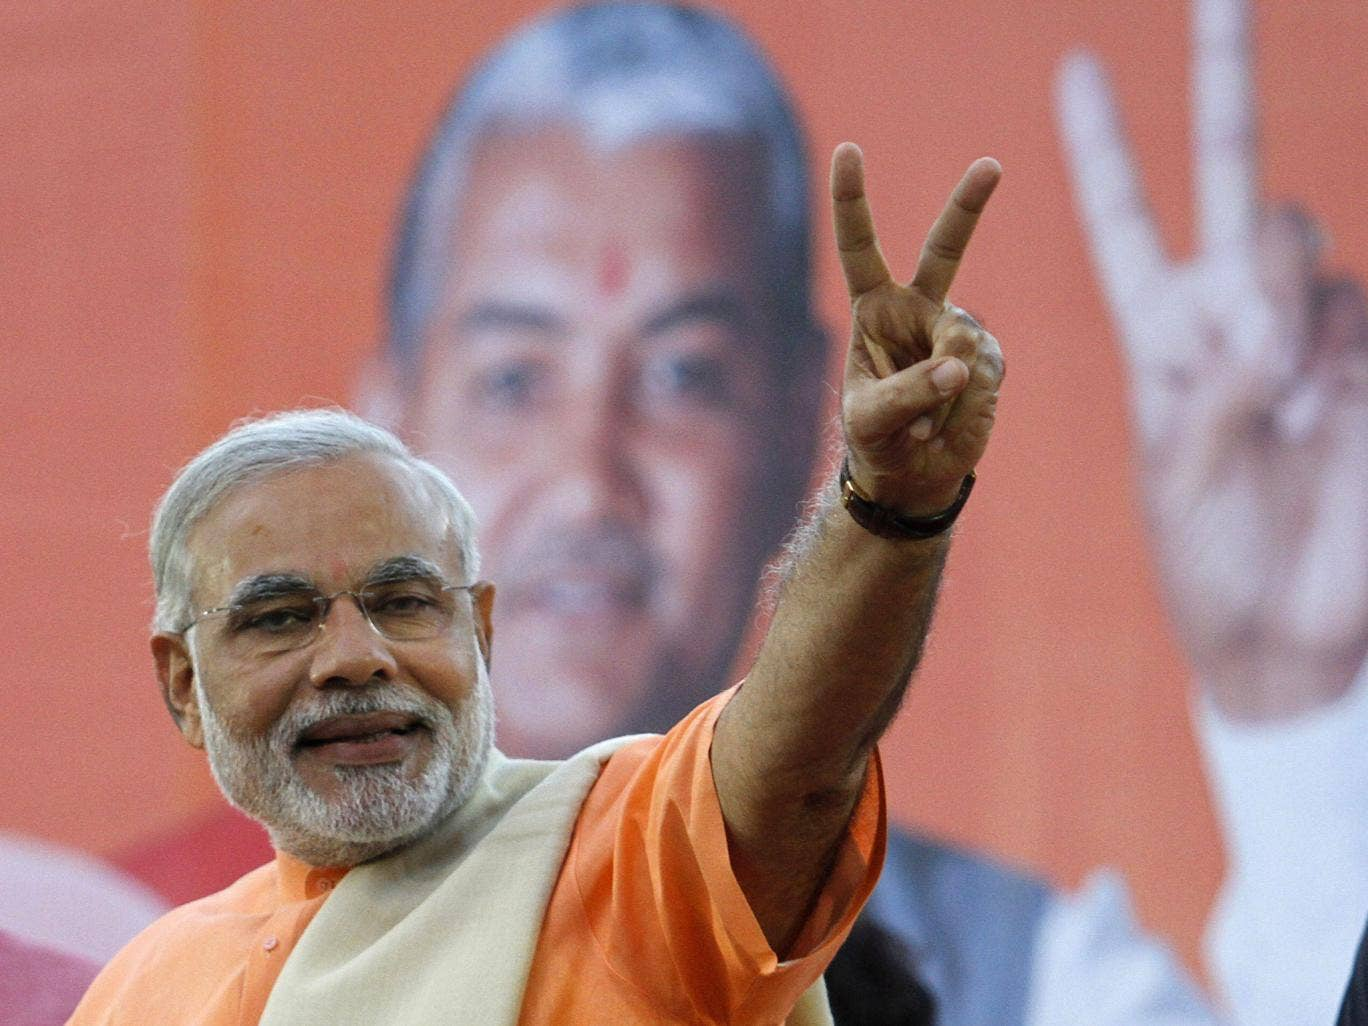 Narendra Modi, chief minister of Gujarat state, gestures on the podium